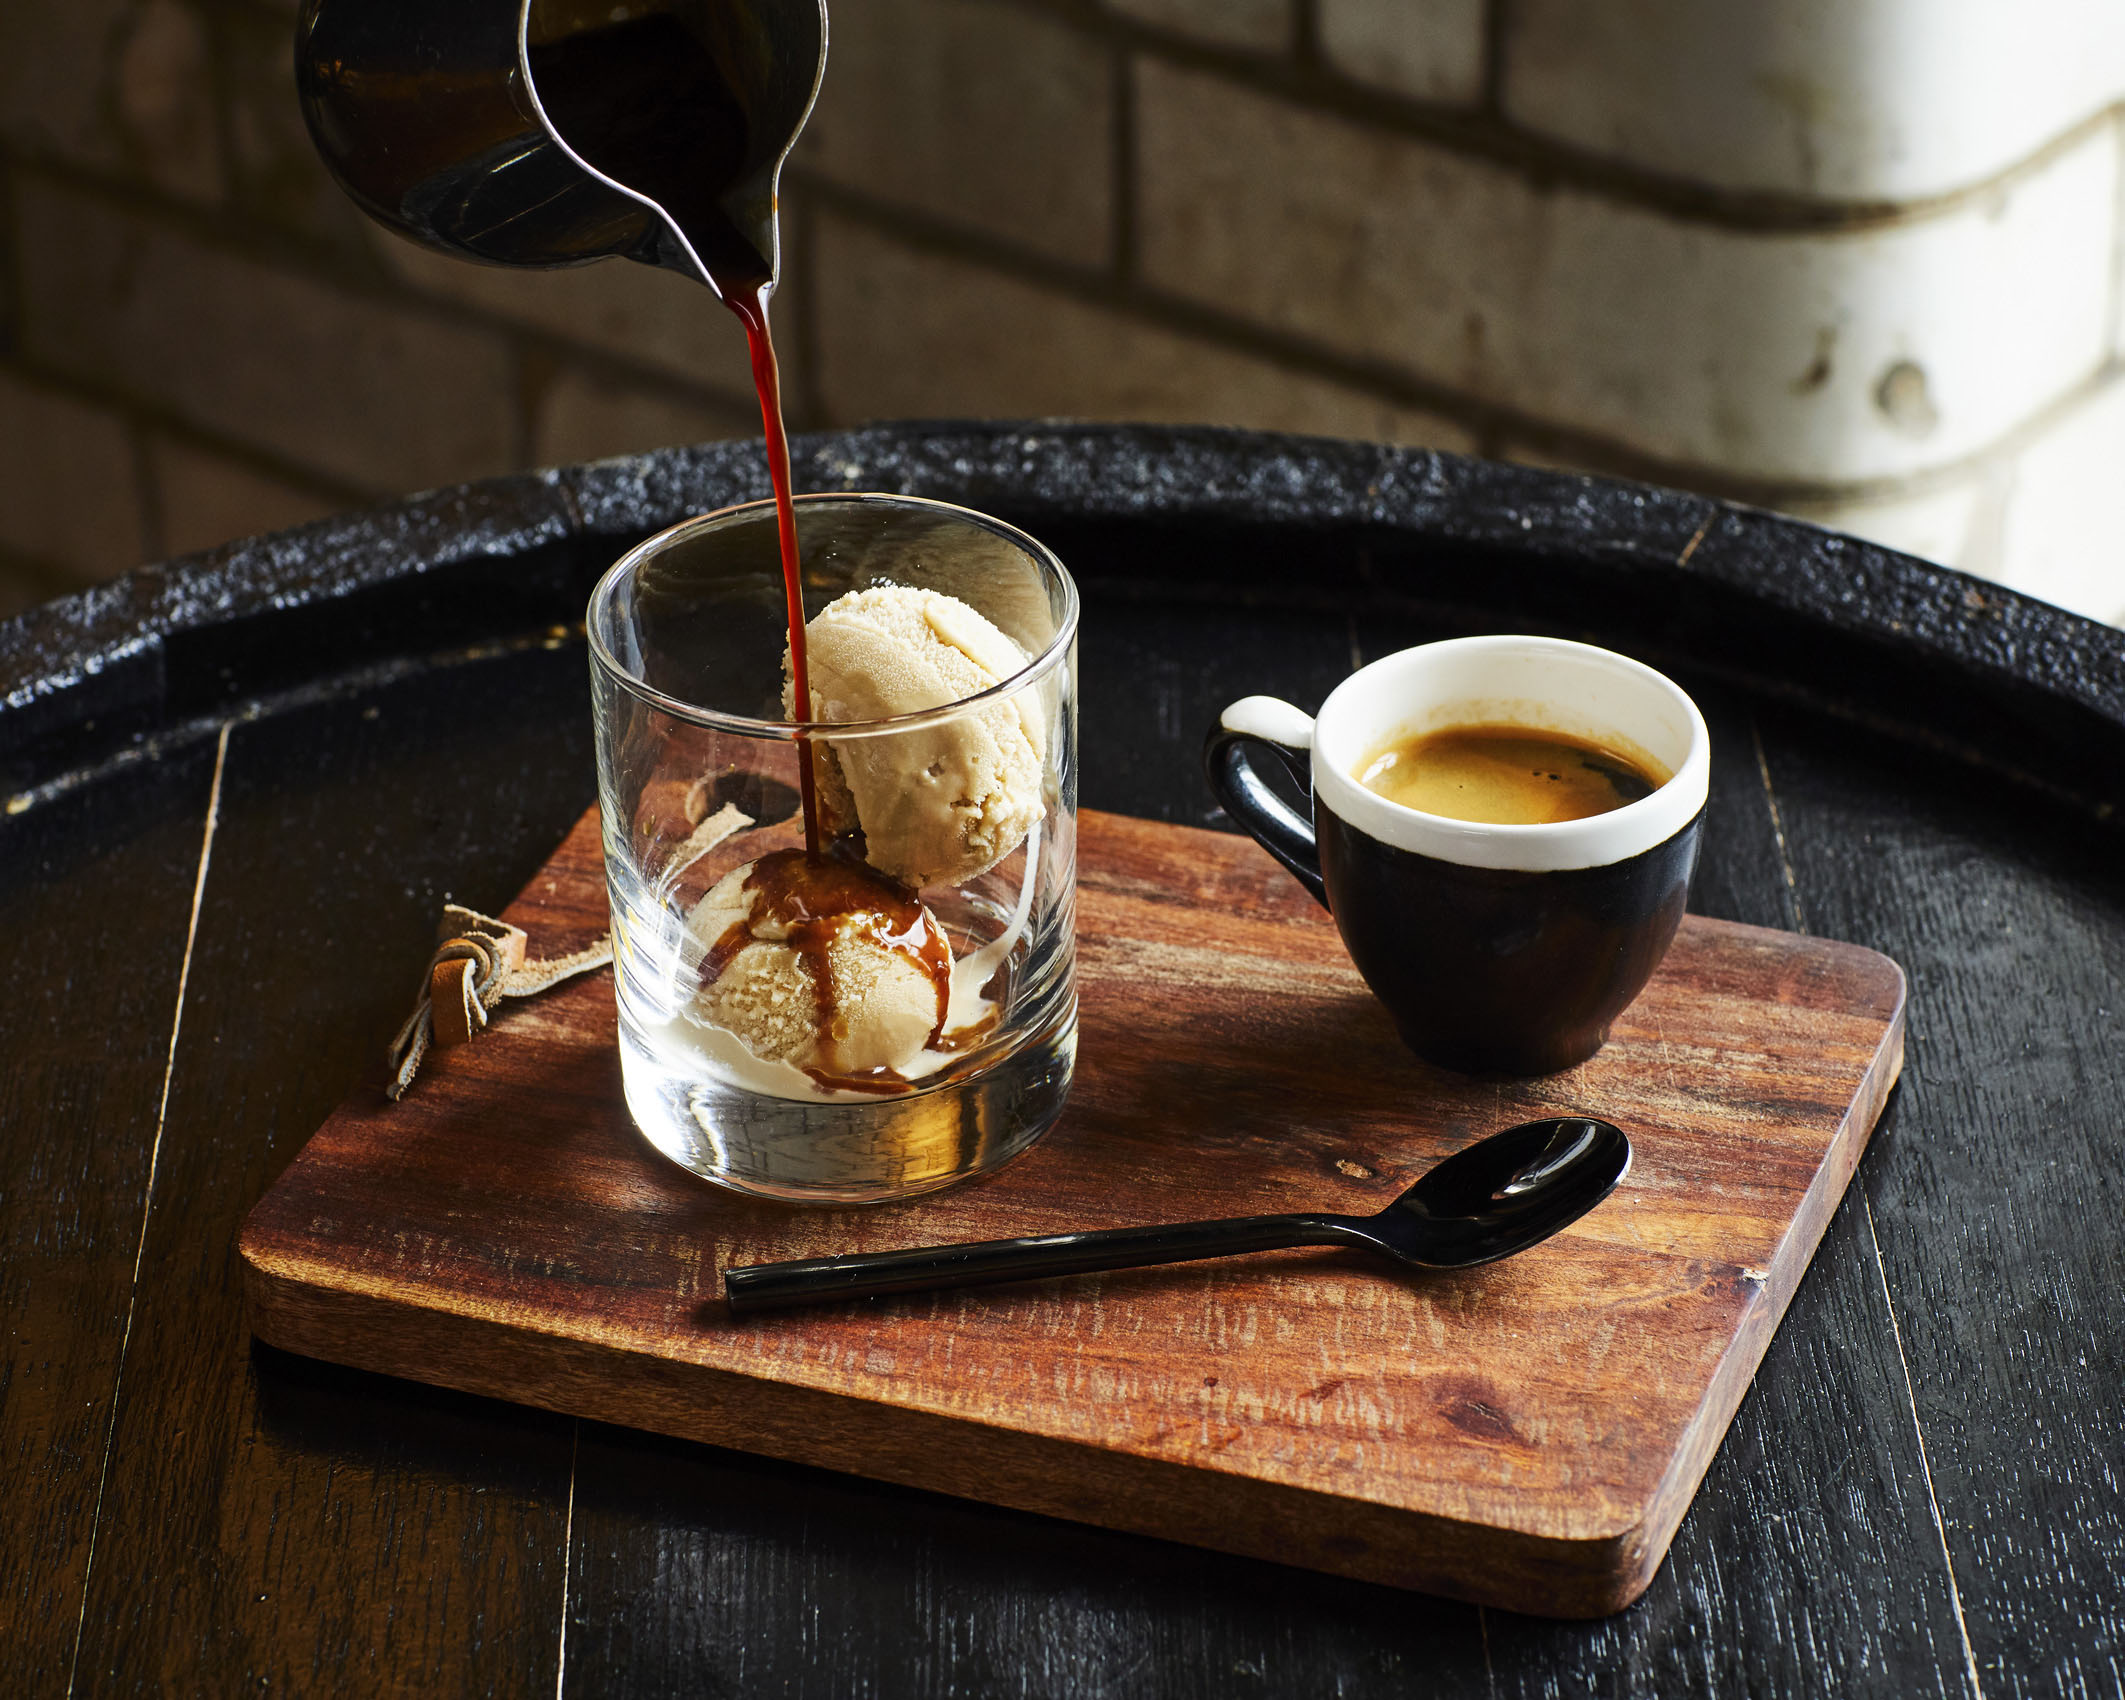 SteveRyan_Photographer_Food_affogato_152